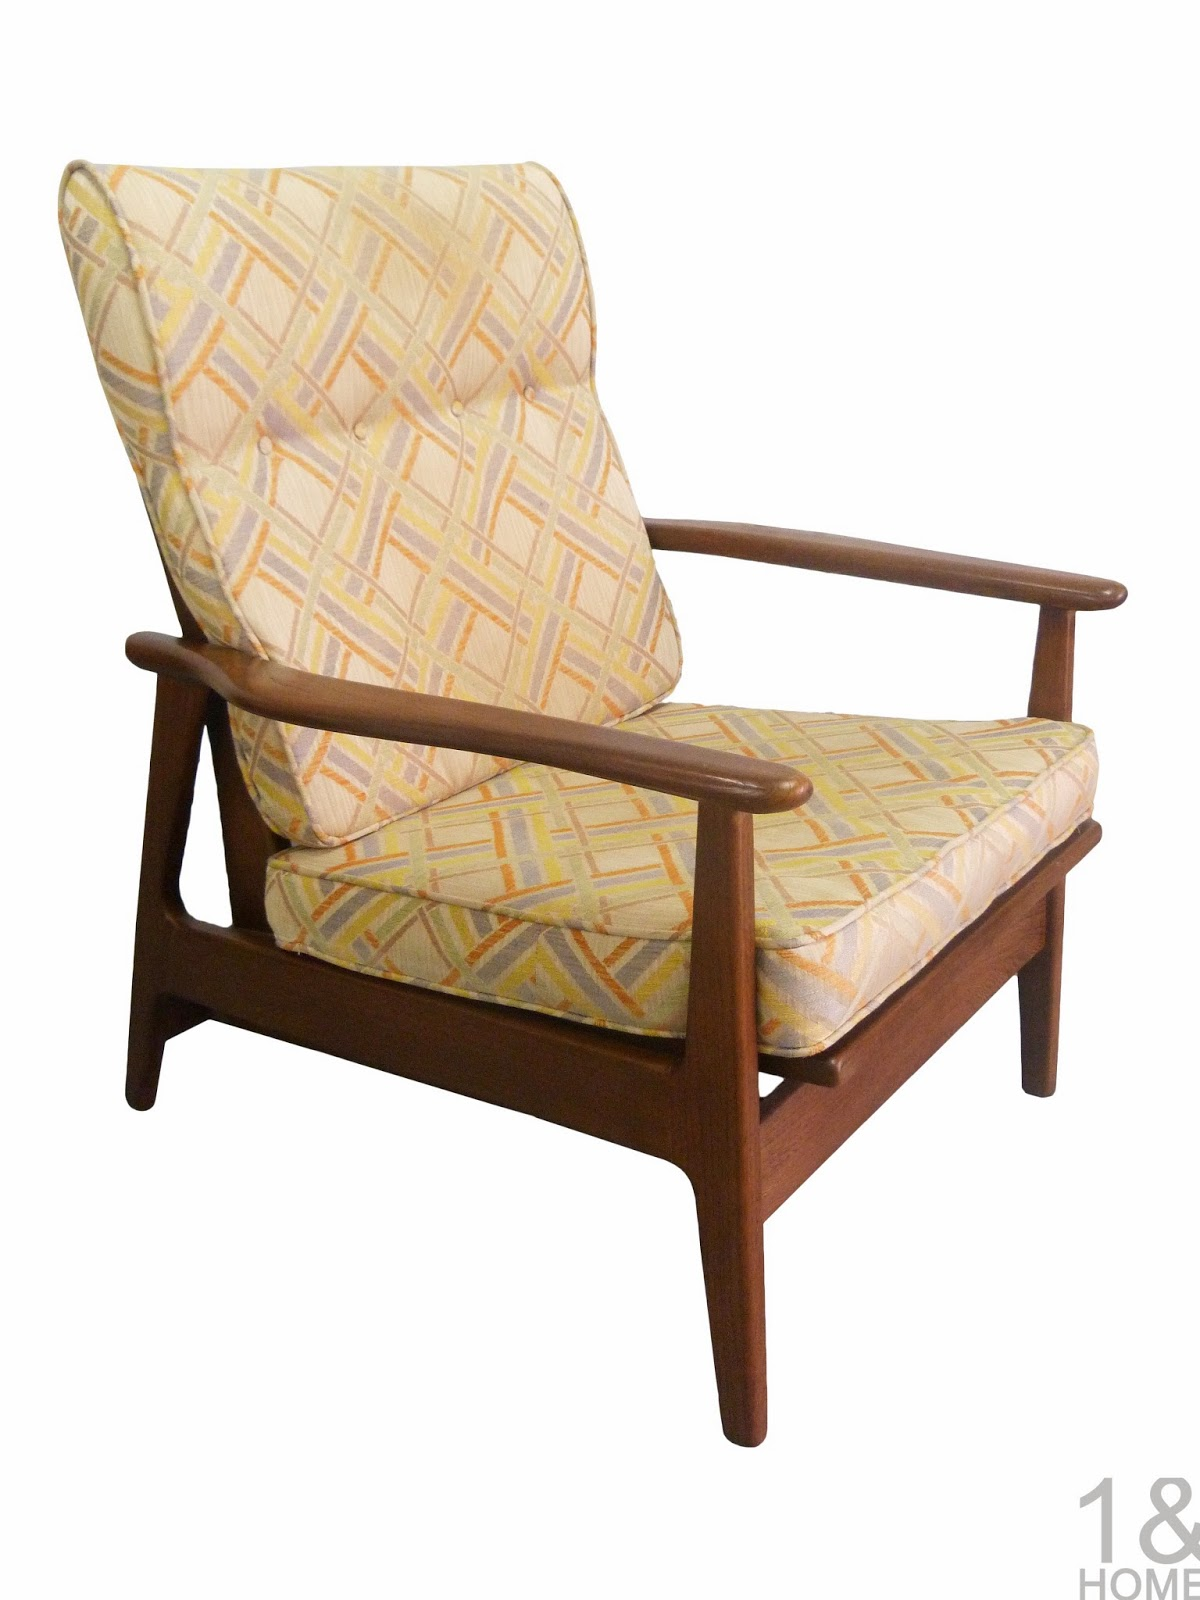 Mid-Century Modern Baumritter Rocking Lounge Chair